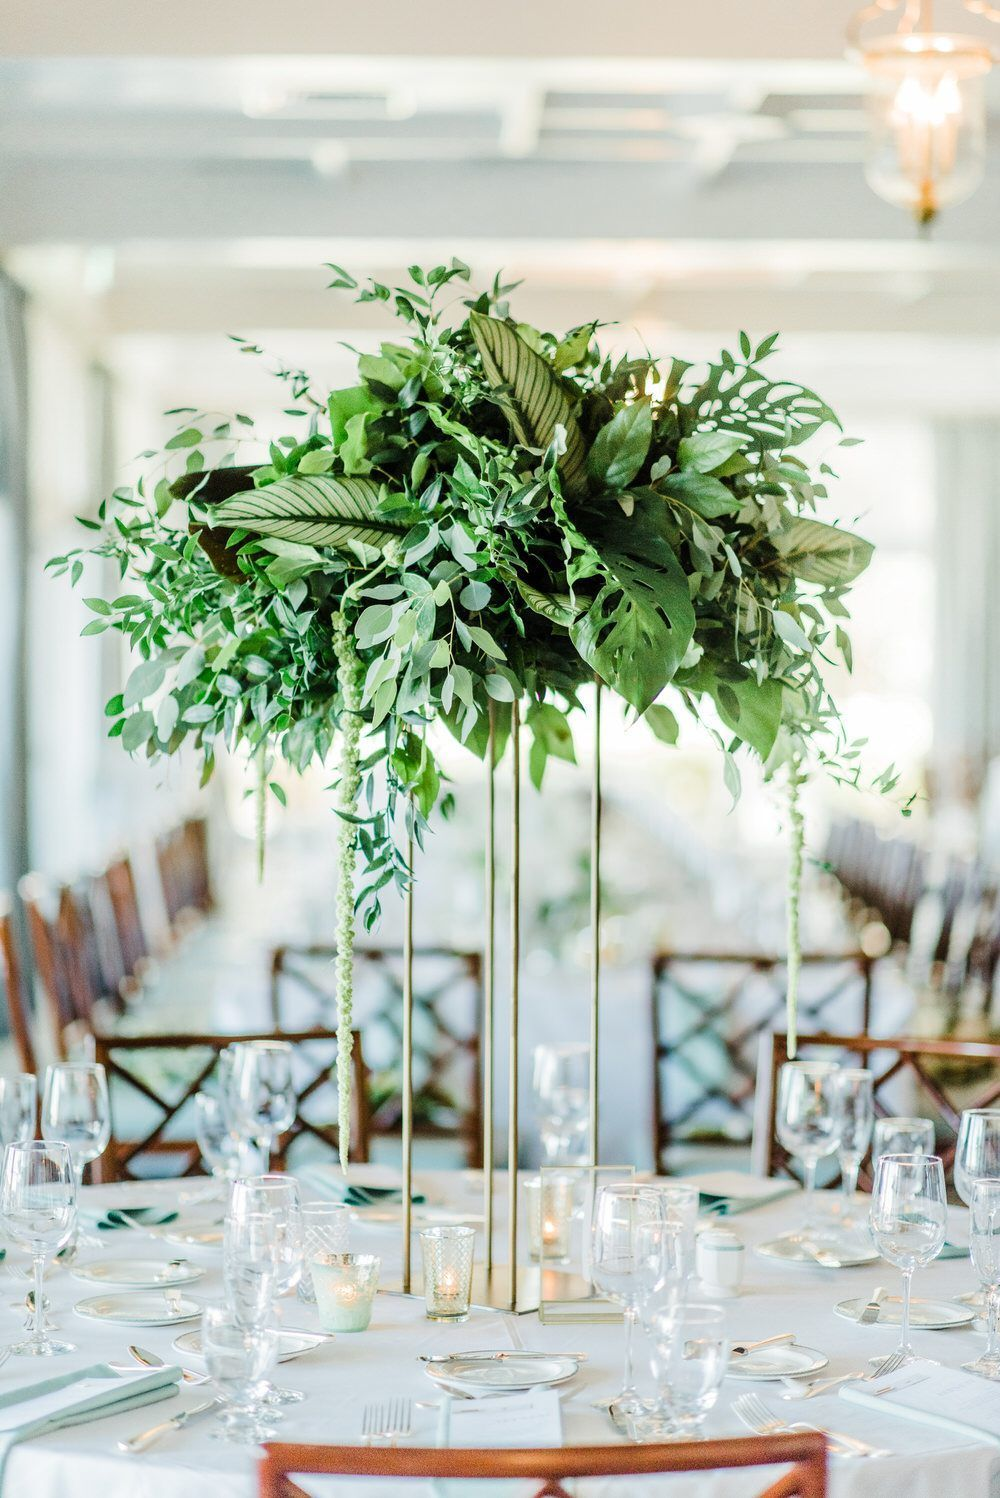 Chic tropical wedding in Florida with a huge bouquet of ruffled palm leaves Chic tropical wedding in Florida with a huge bouquet of ruffled palm leaves